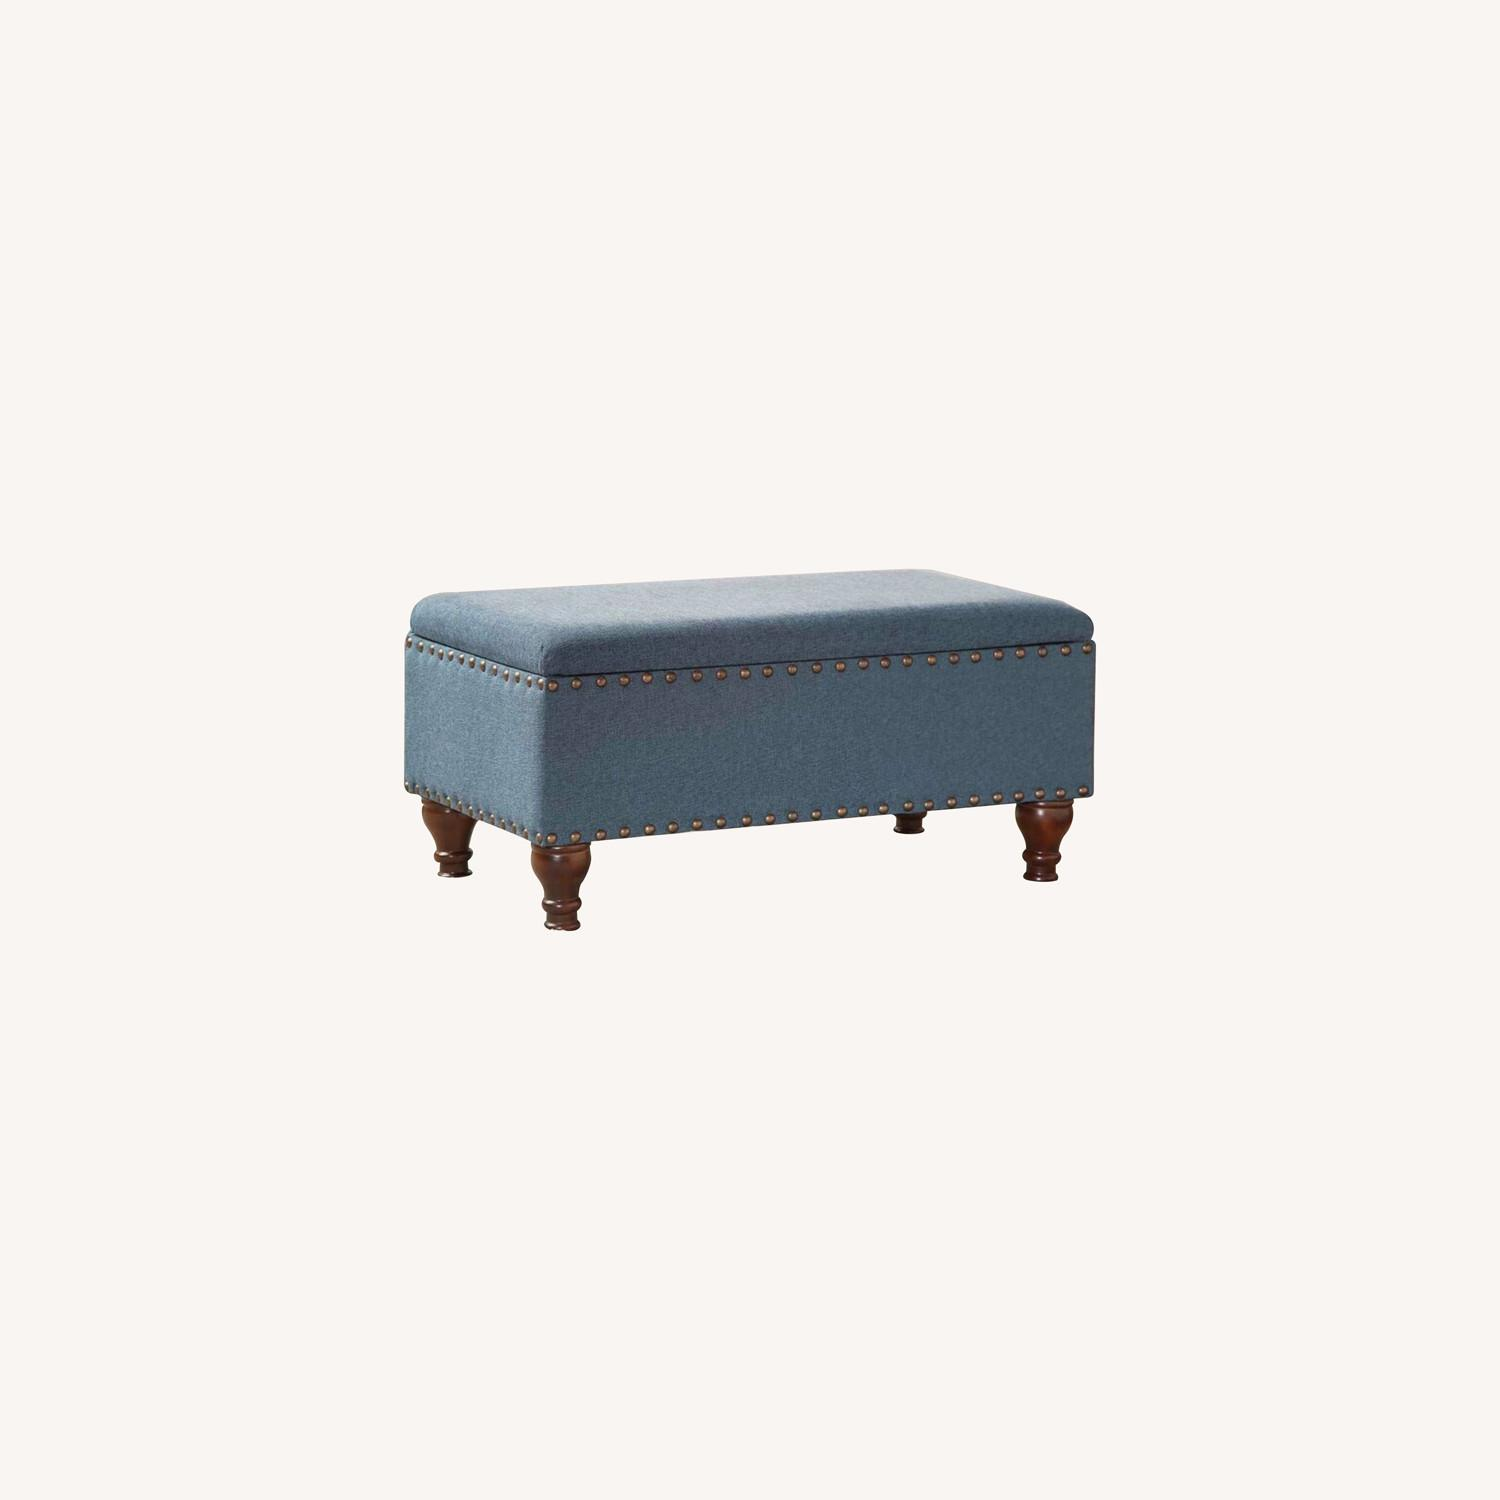 Wayfair Oakford Upholstered Flip Top Storage Bench - image-6